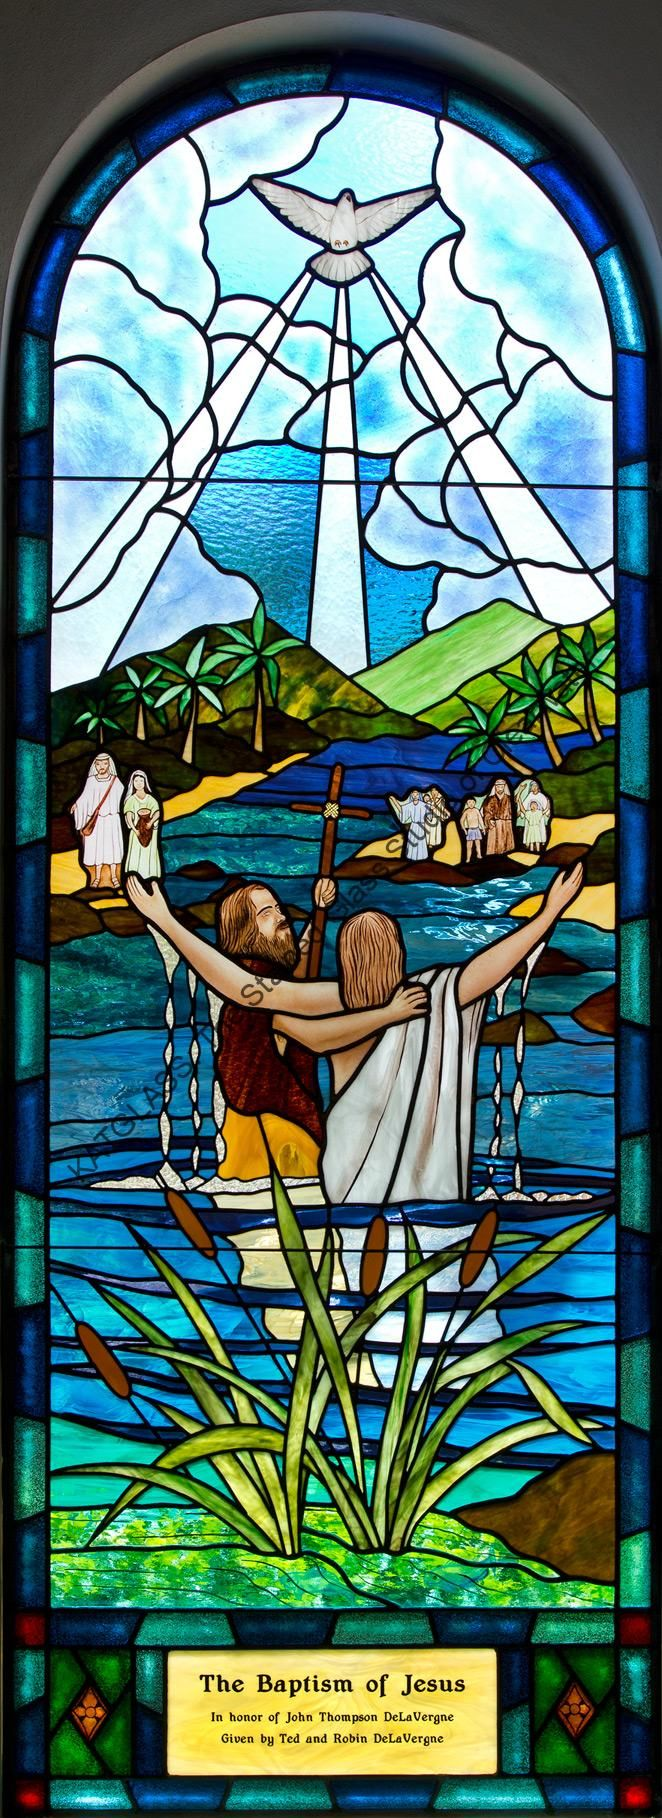 5387db89b3d5 The Baptism of JESUS Stained Glass Church Window by Katglass.com